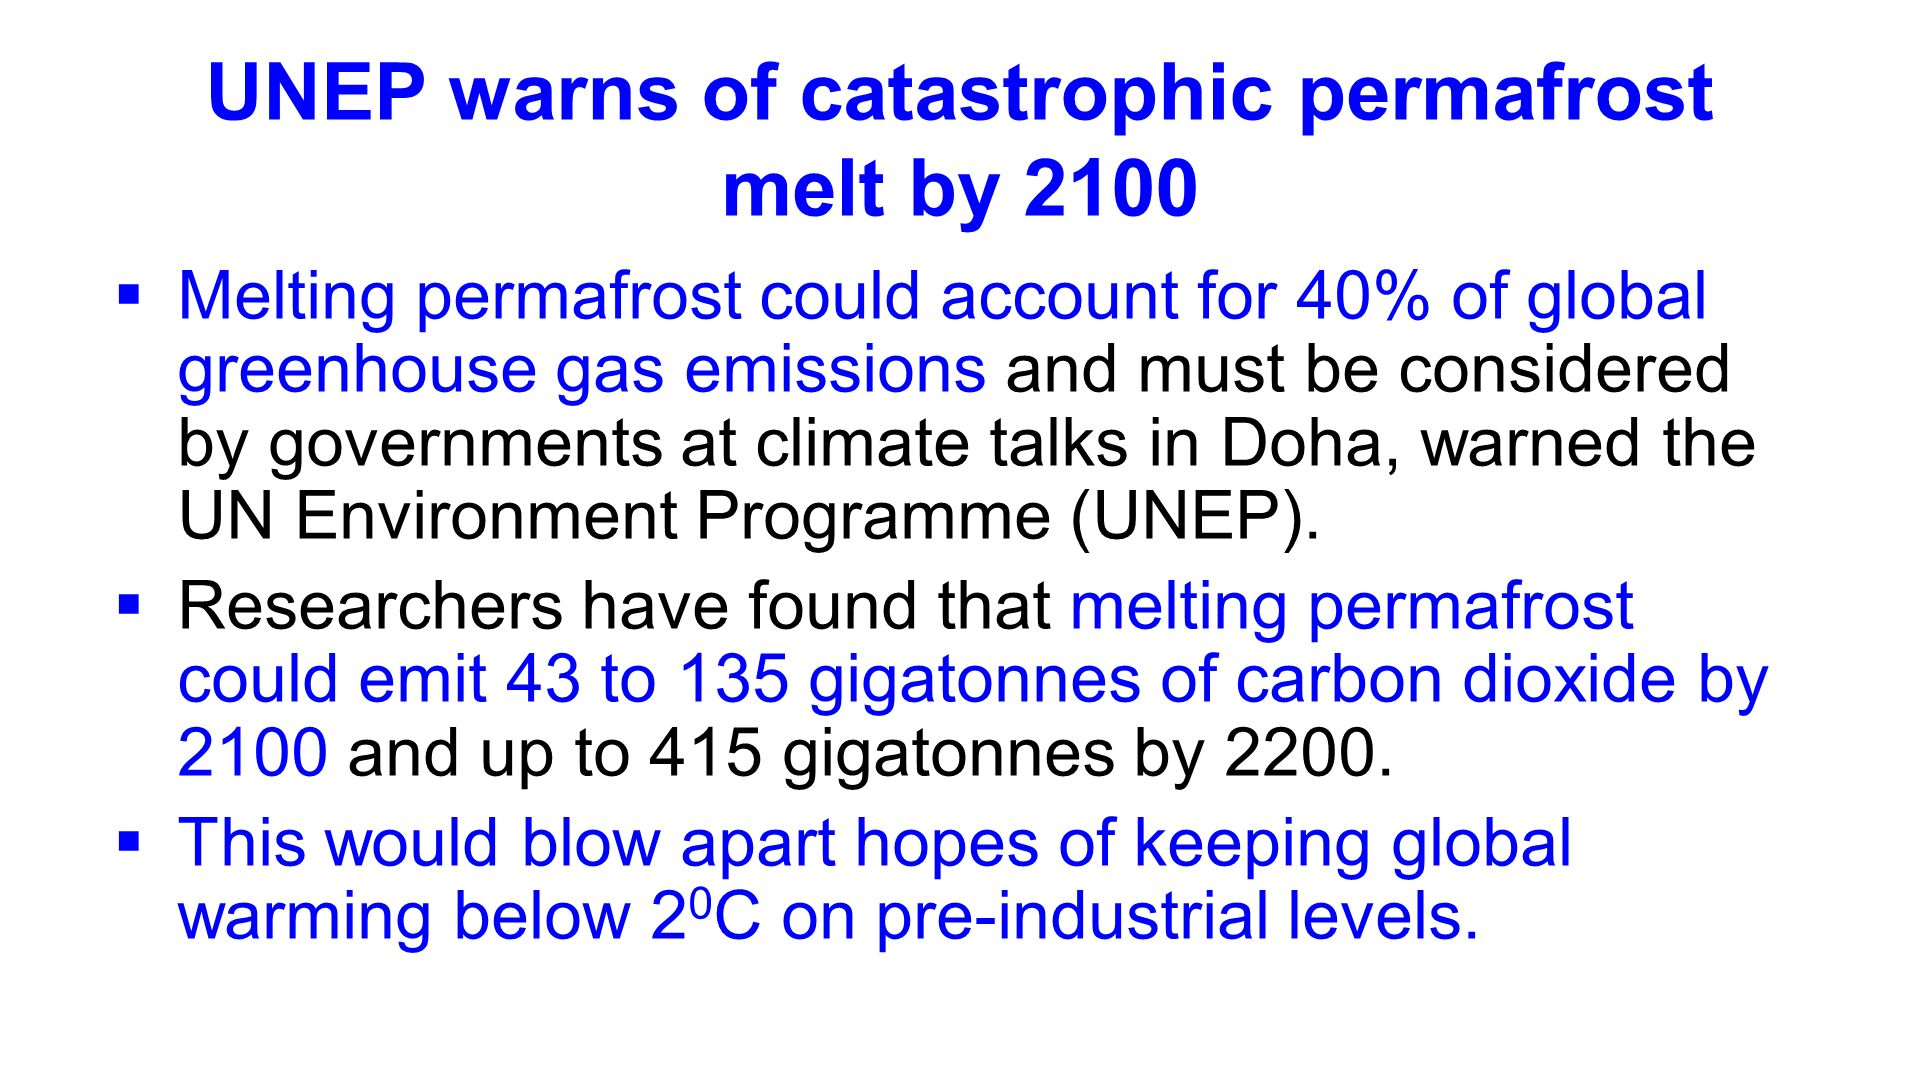 UNEP warns of catastrophic permafrost melt by 2100 Melting permafrost could account for 40% of global greenhouse gas emissions and must be considered by governments at climate talks in Doha, warned the UN Environment Programme (UNEP).